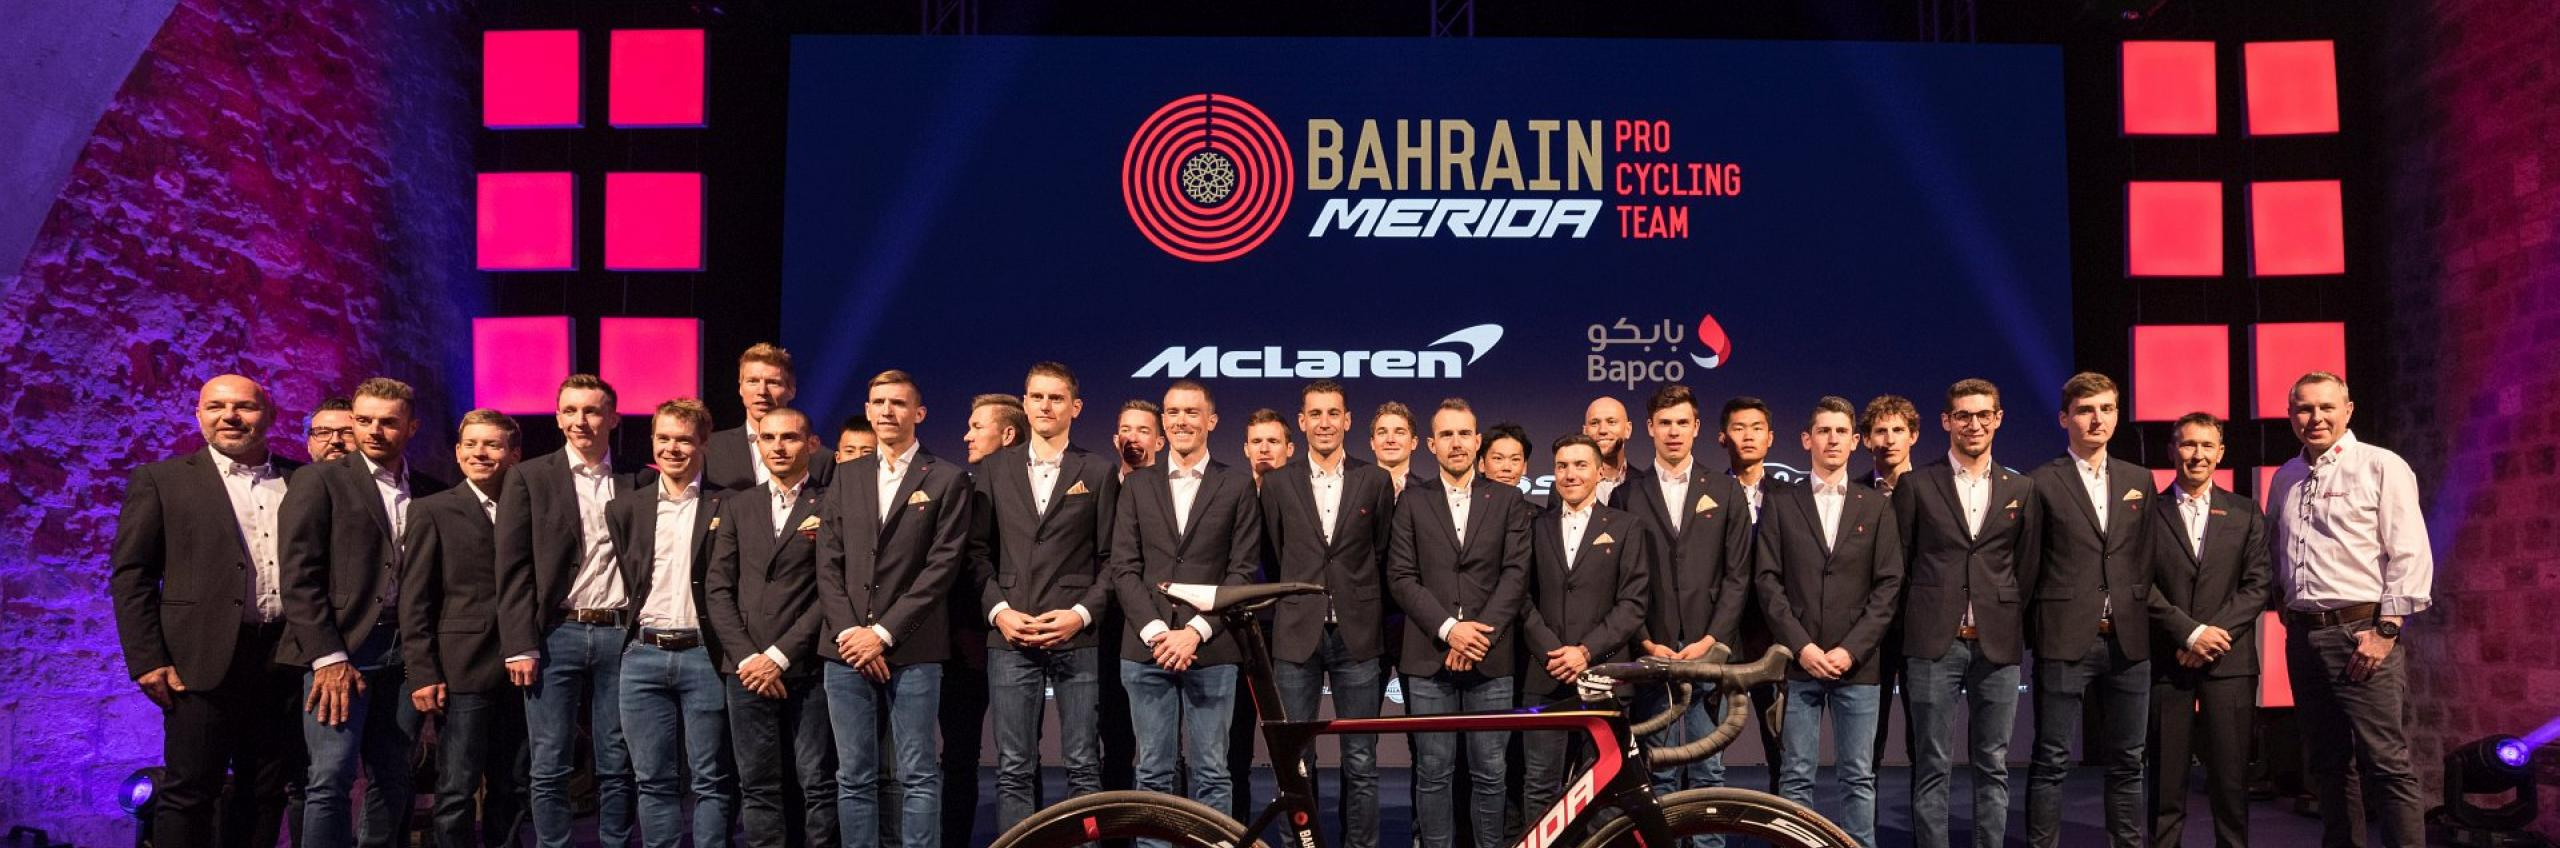 Photo credit: Team Bahrain Merida